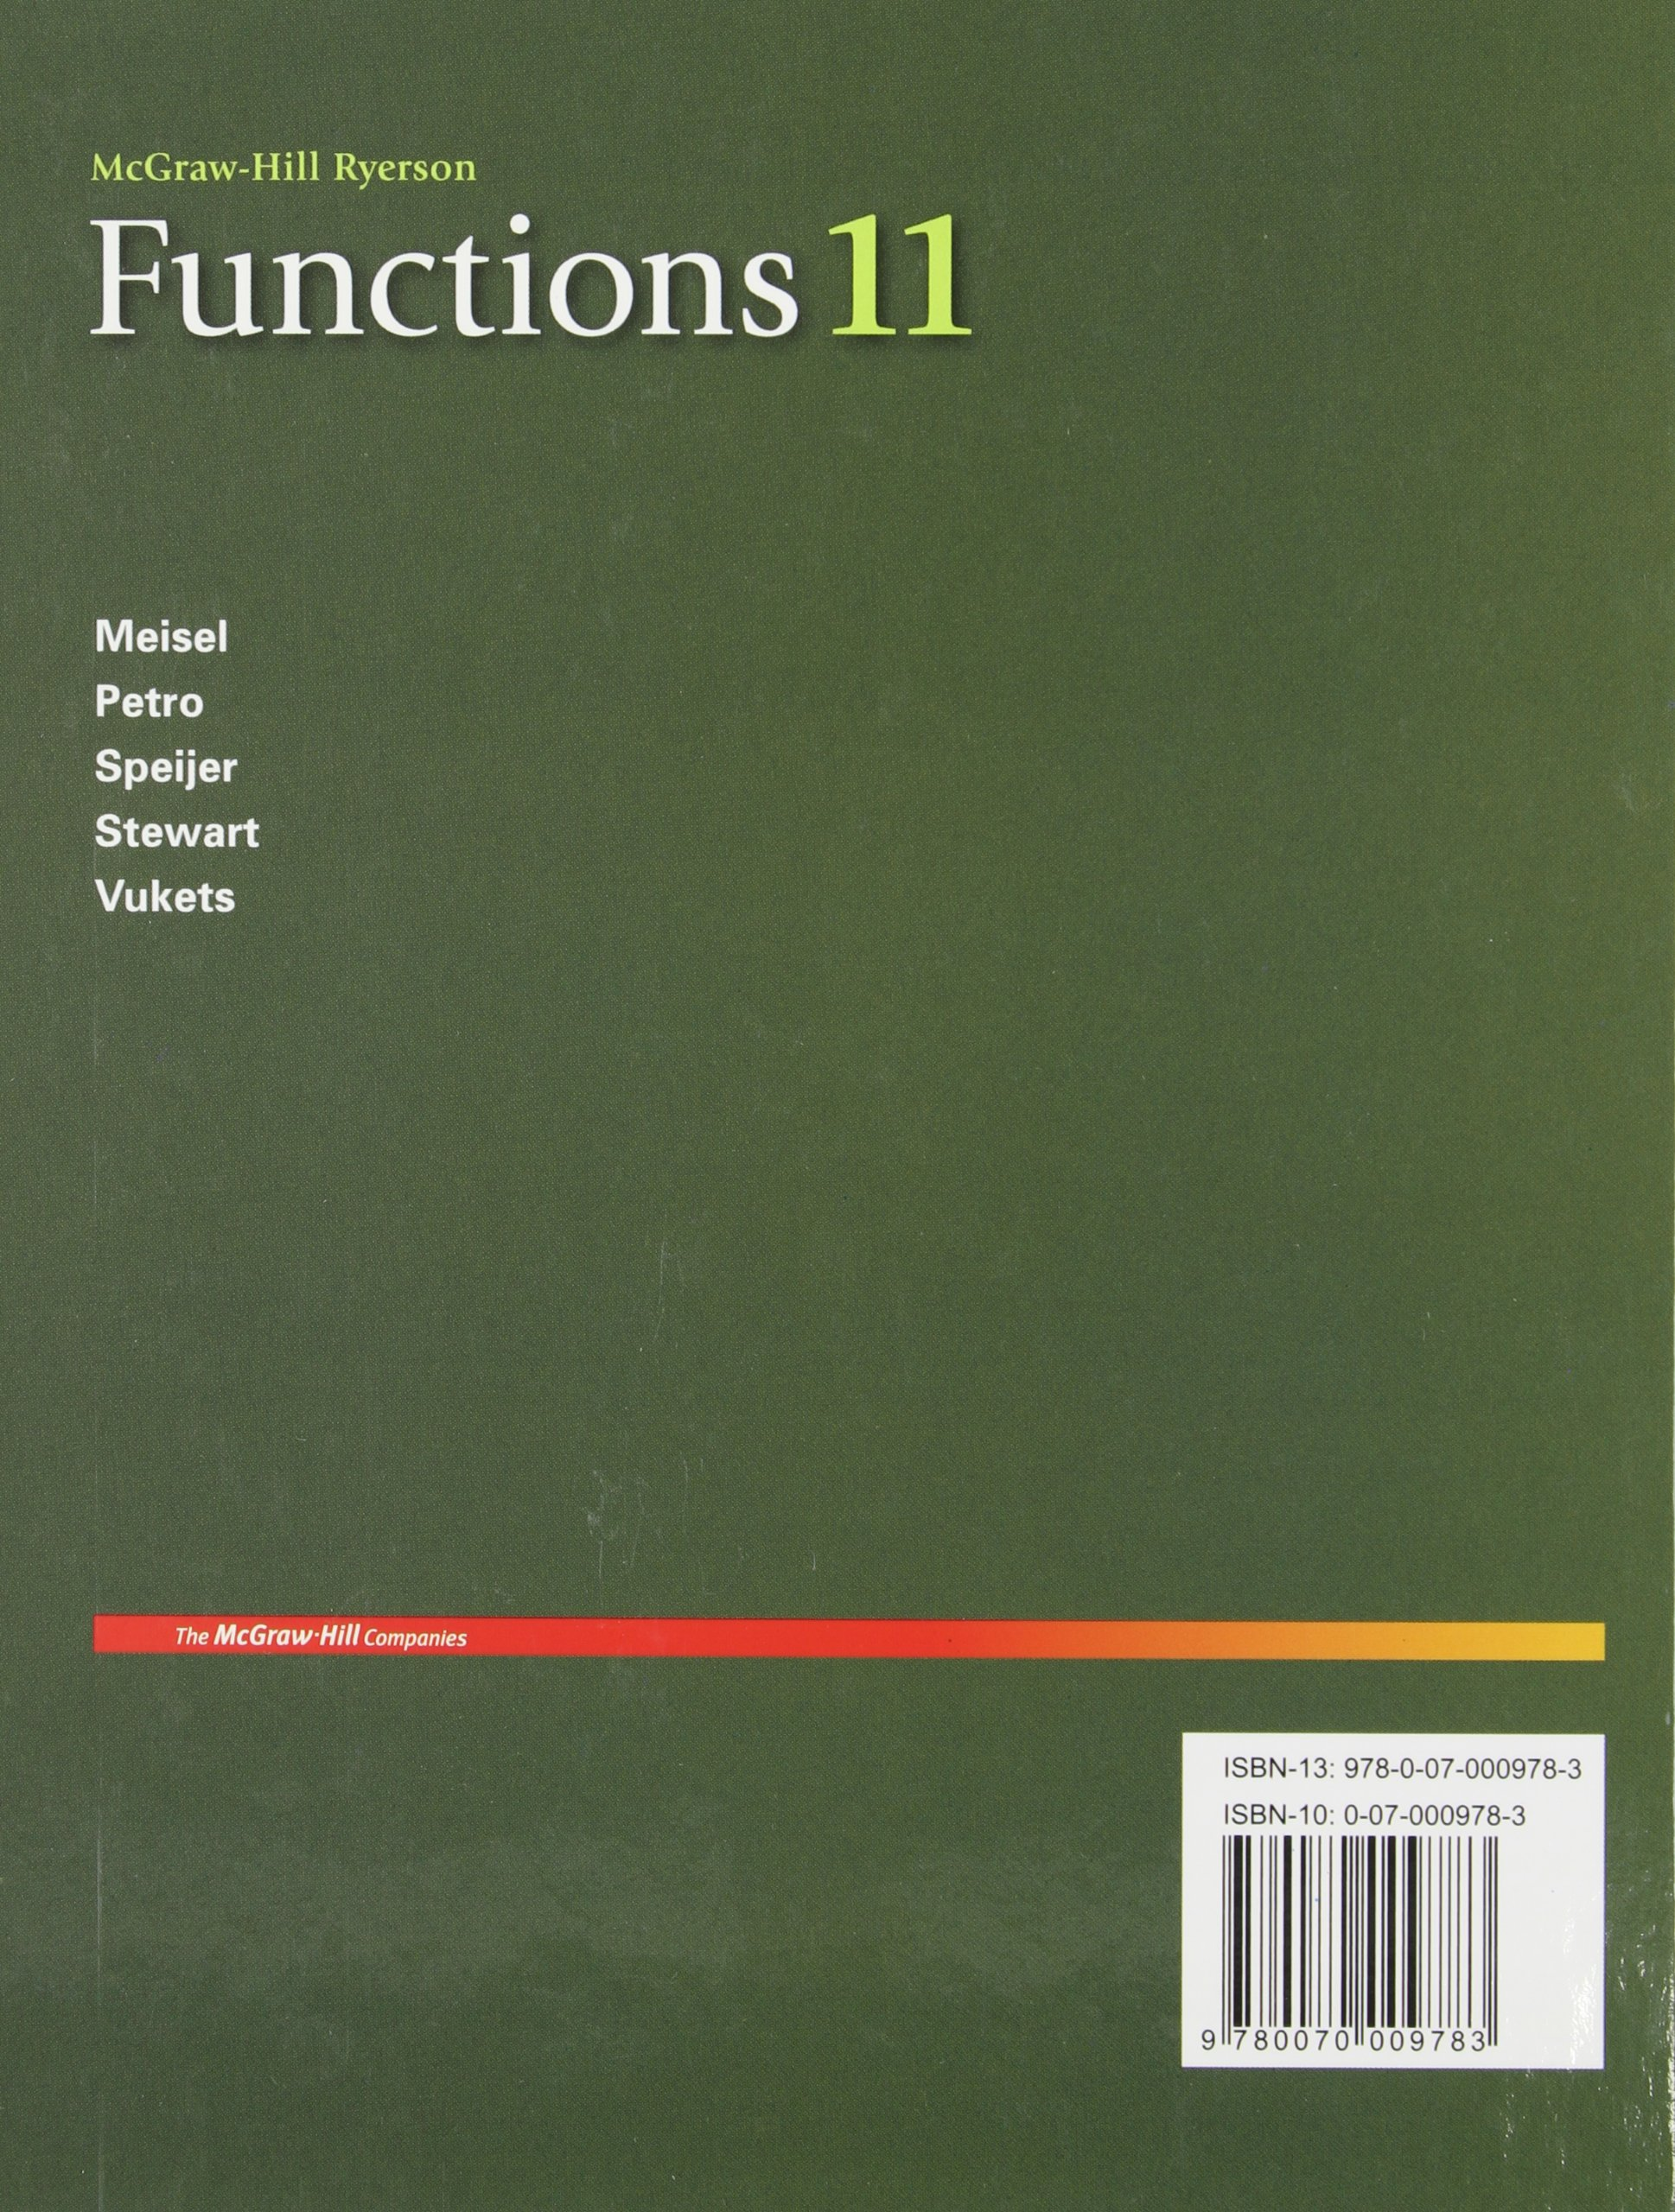 Mcgraw hill ryerson mathematics 11 ebook coupon codes choice image functions 11 student edition jacob speijer roland meisel david functions 11 student edition jacob speijer roland fandeluxe Image collections